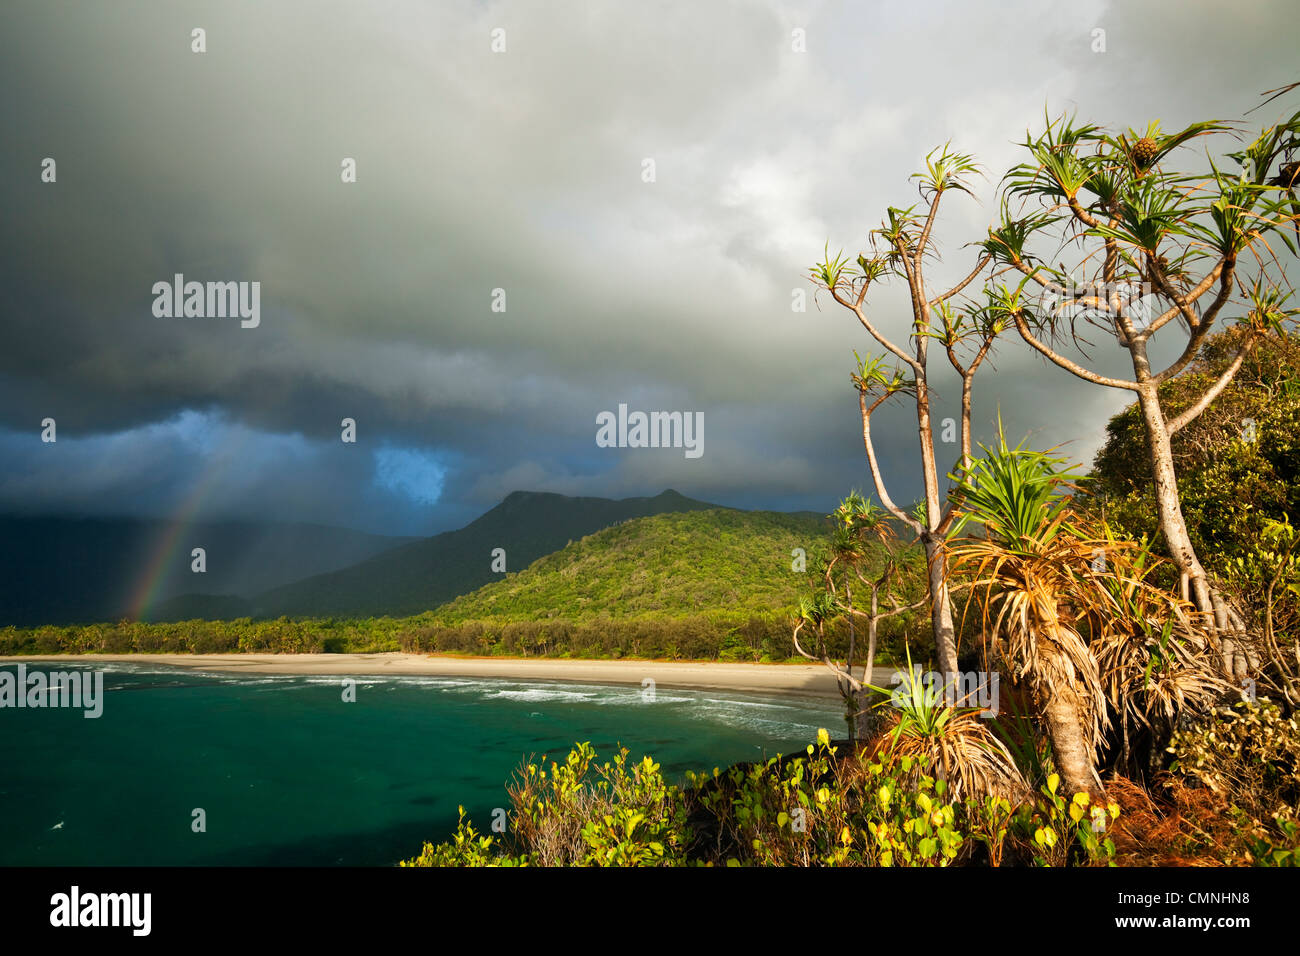 Avis de Myall Beach pendant la tempête de pluie du matin. Cape Tribulation, parc national de Daintree, Queensland, Banque D'Images